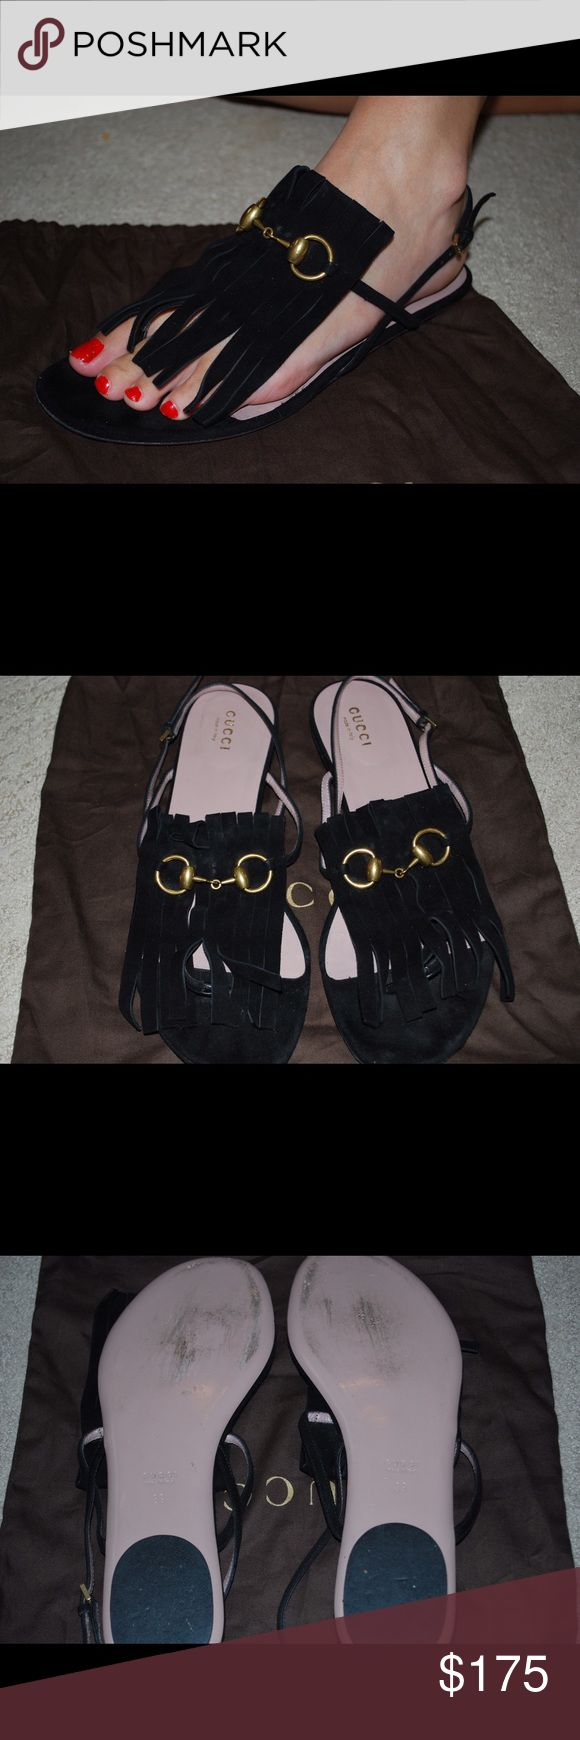 Gucci sandals!! 100% authentic Gucci sandals. Super cute and comfortable. Fairly worn on the bottom but look brand new on the top of the shoe!! Comes with dust bag. Price is always negotiable. Gucci Shoes Sandals